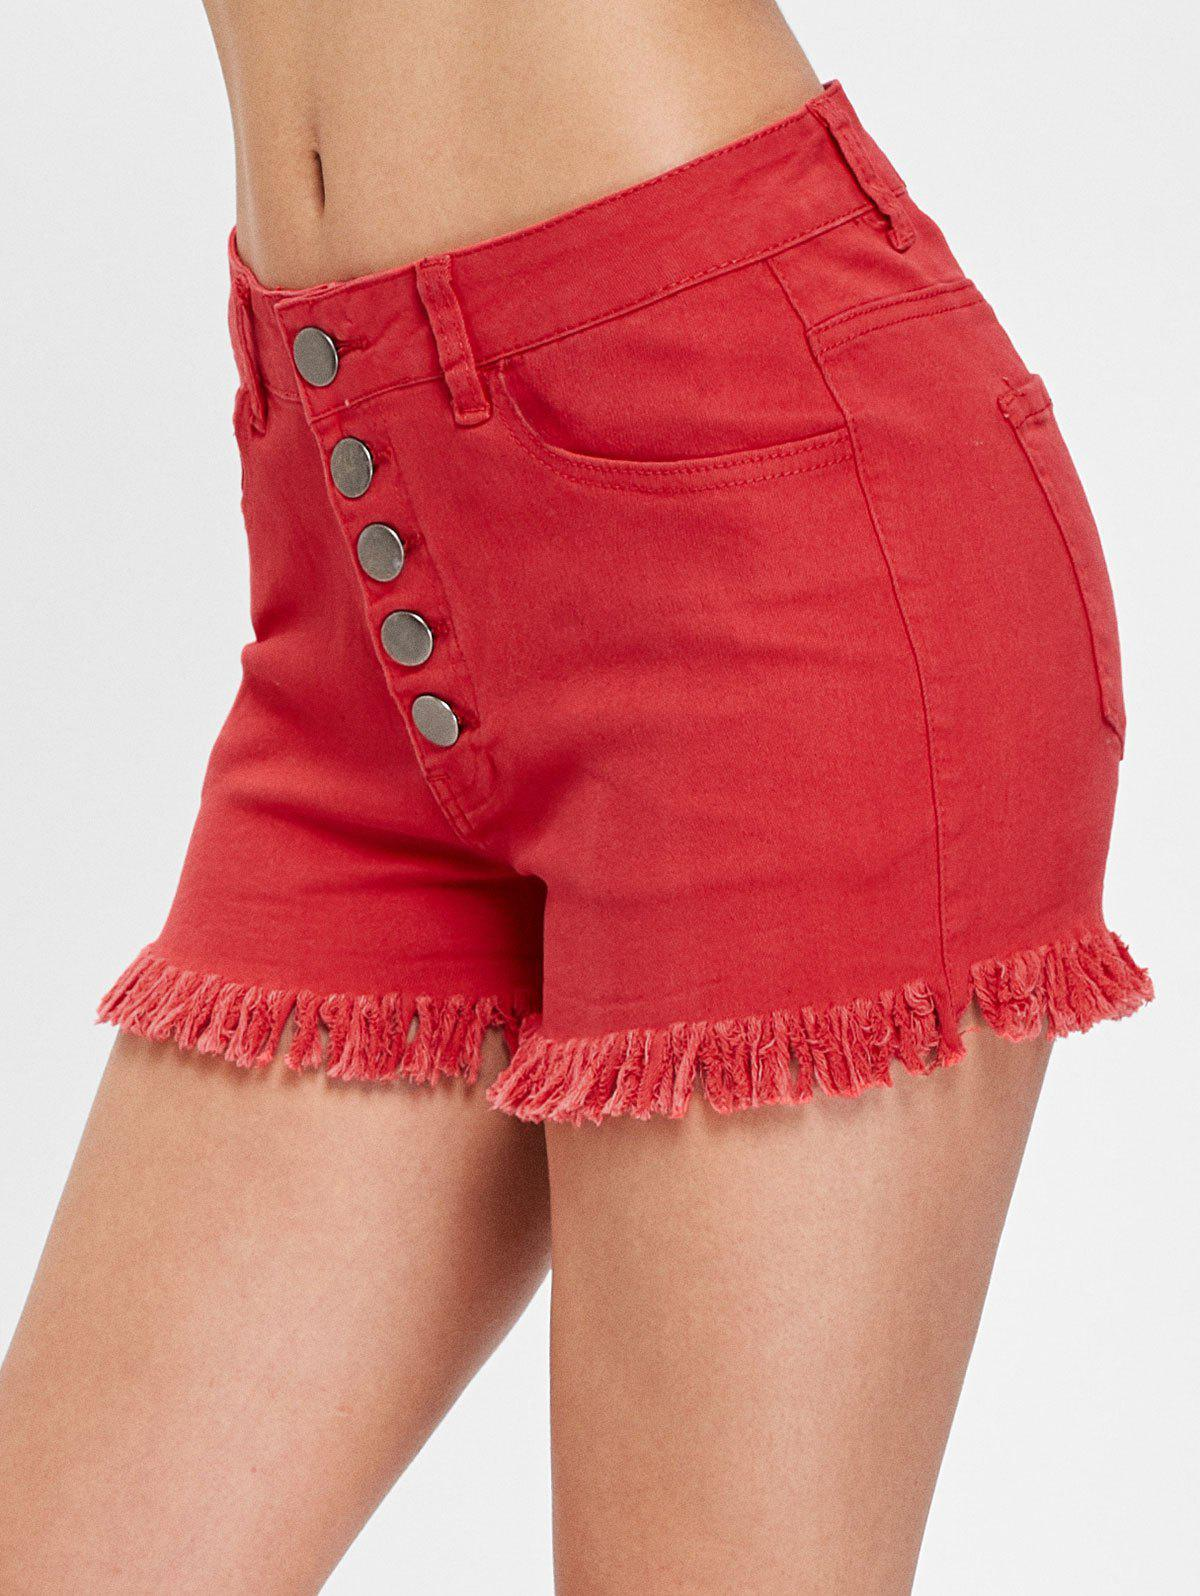 Cheap Button Fly Frayed Trim Jeans Shorts